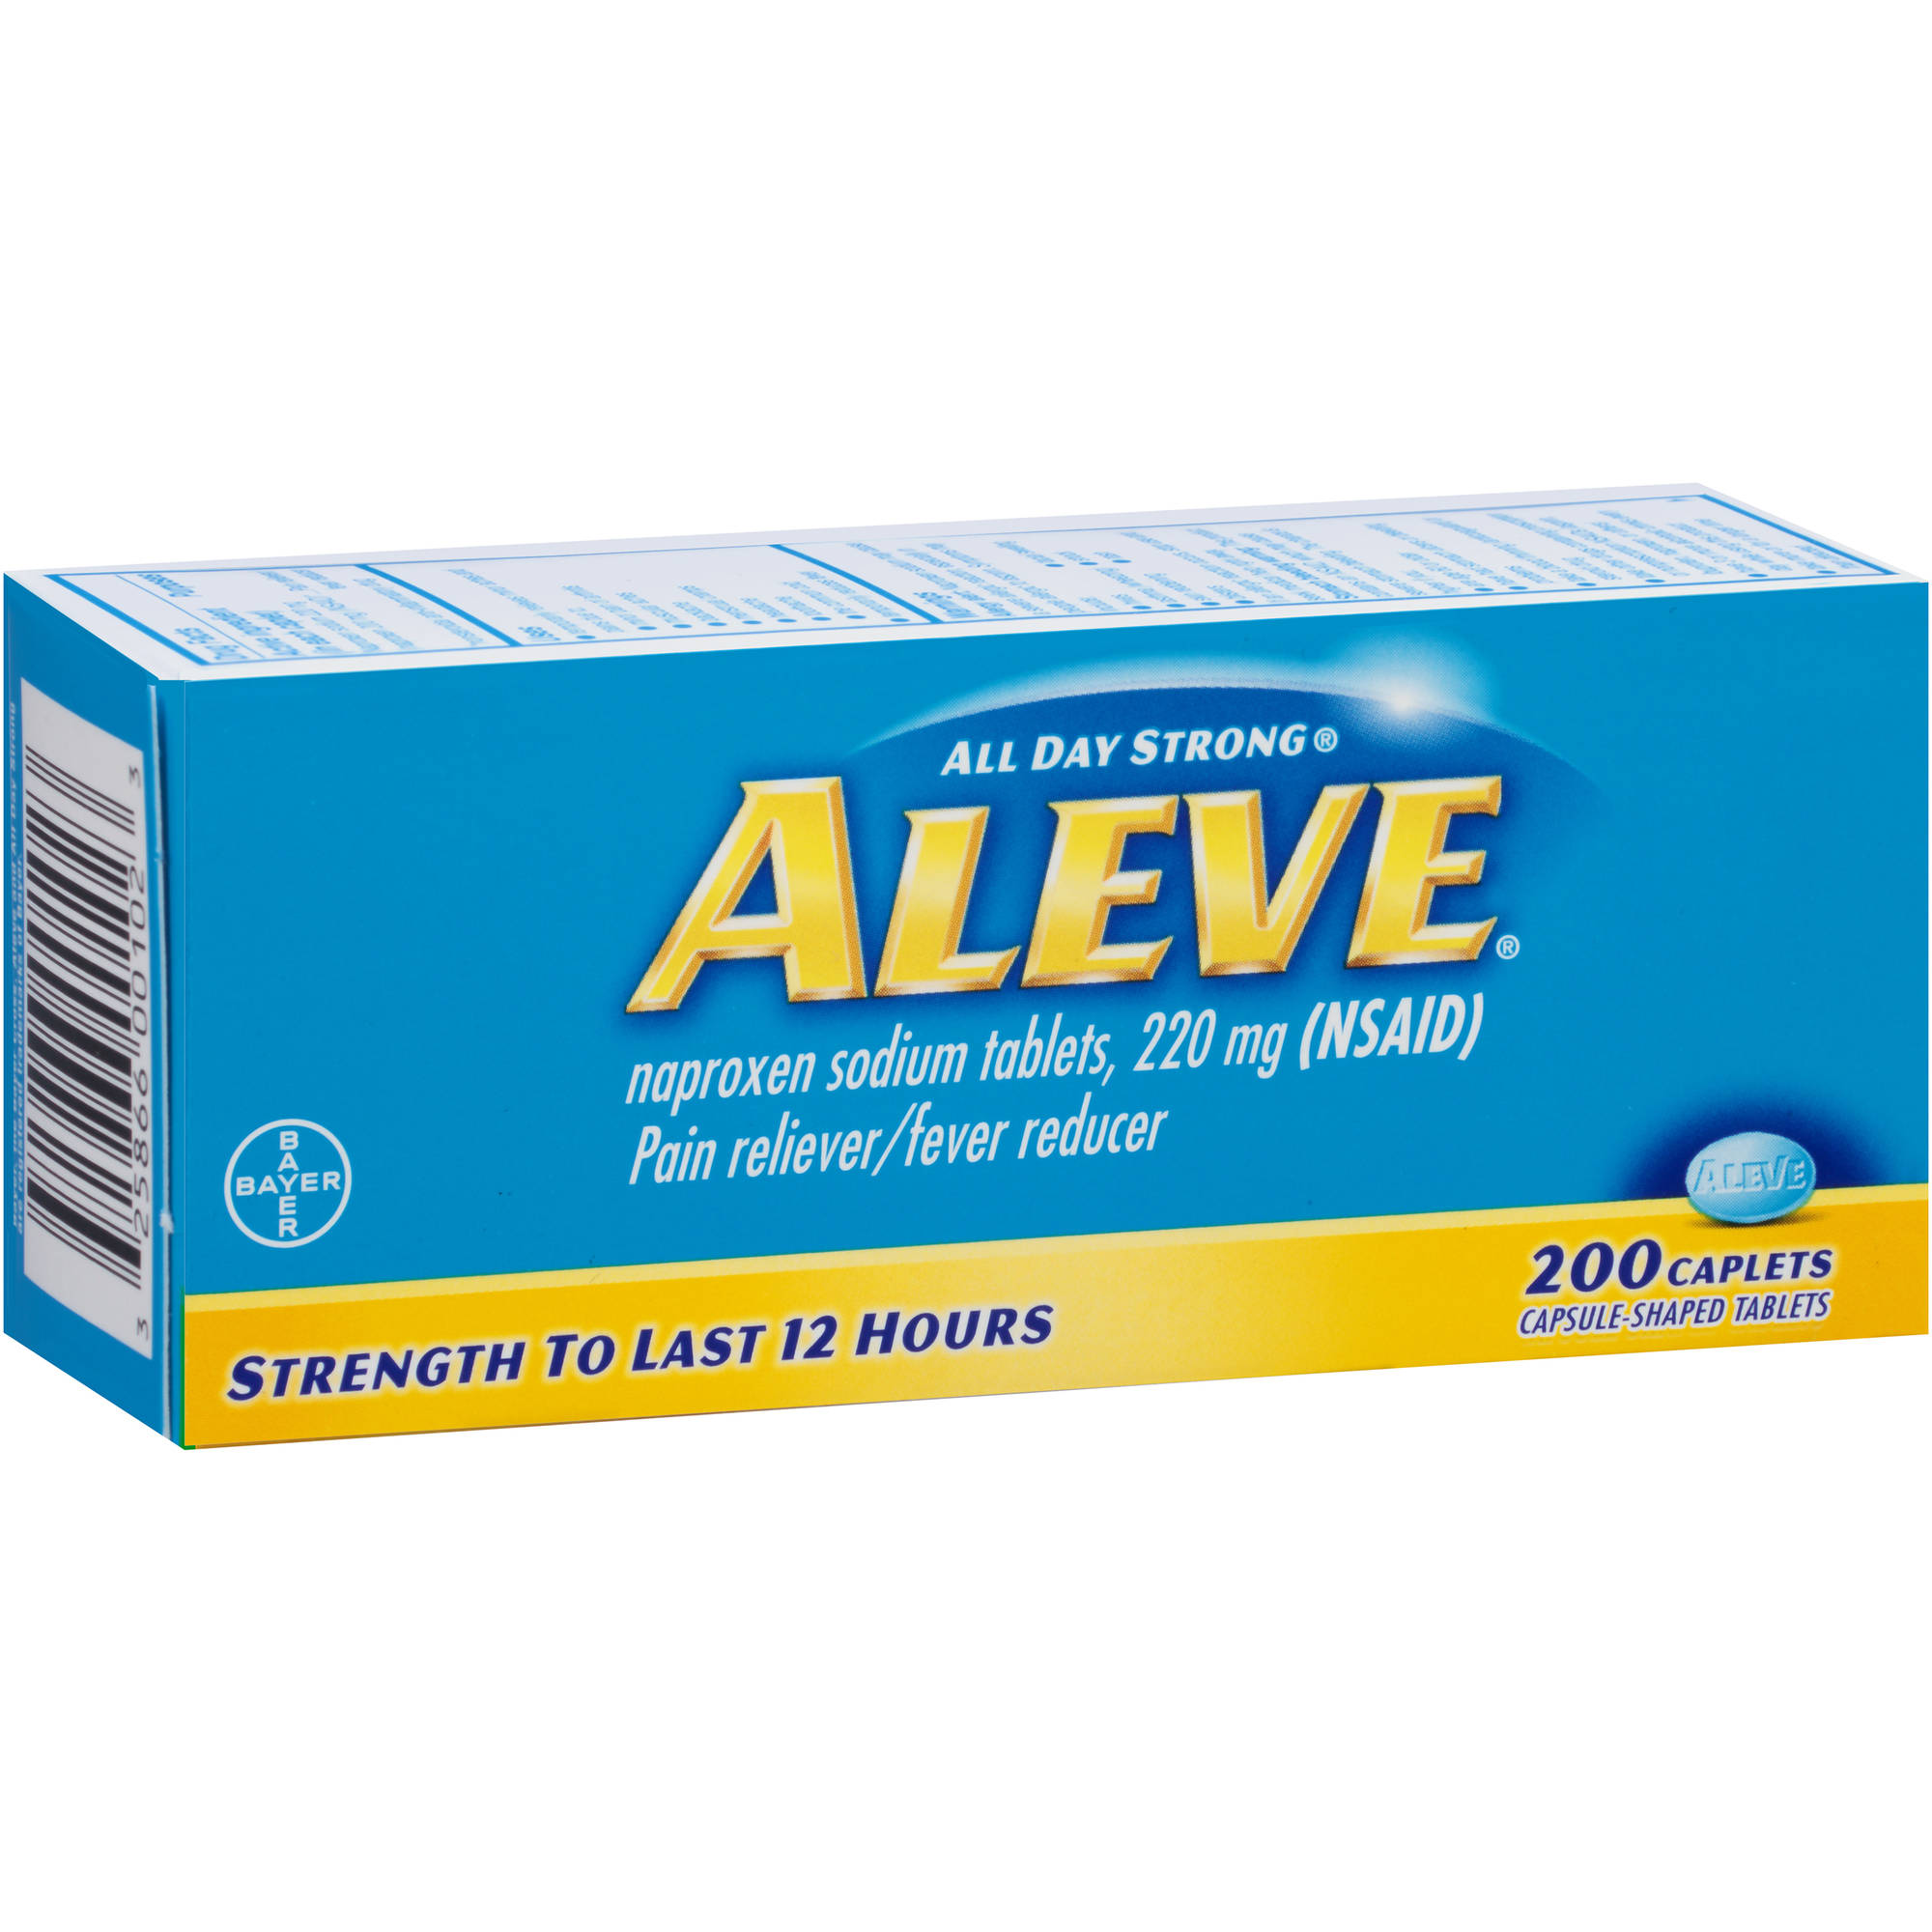 Aleve Pain Reliever/Fever Reducer Naproxen Sodium Caplets, 220mg, 220 count